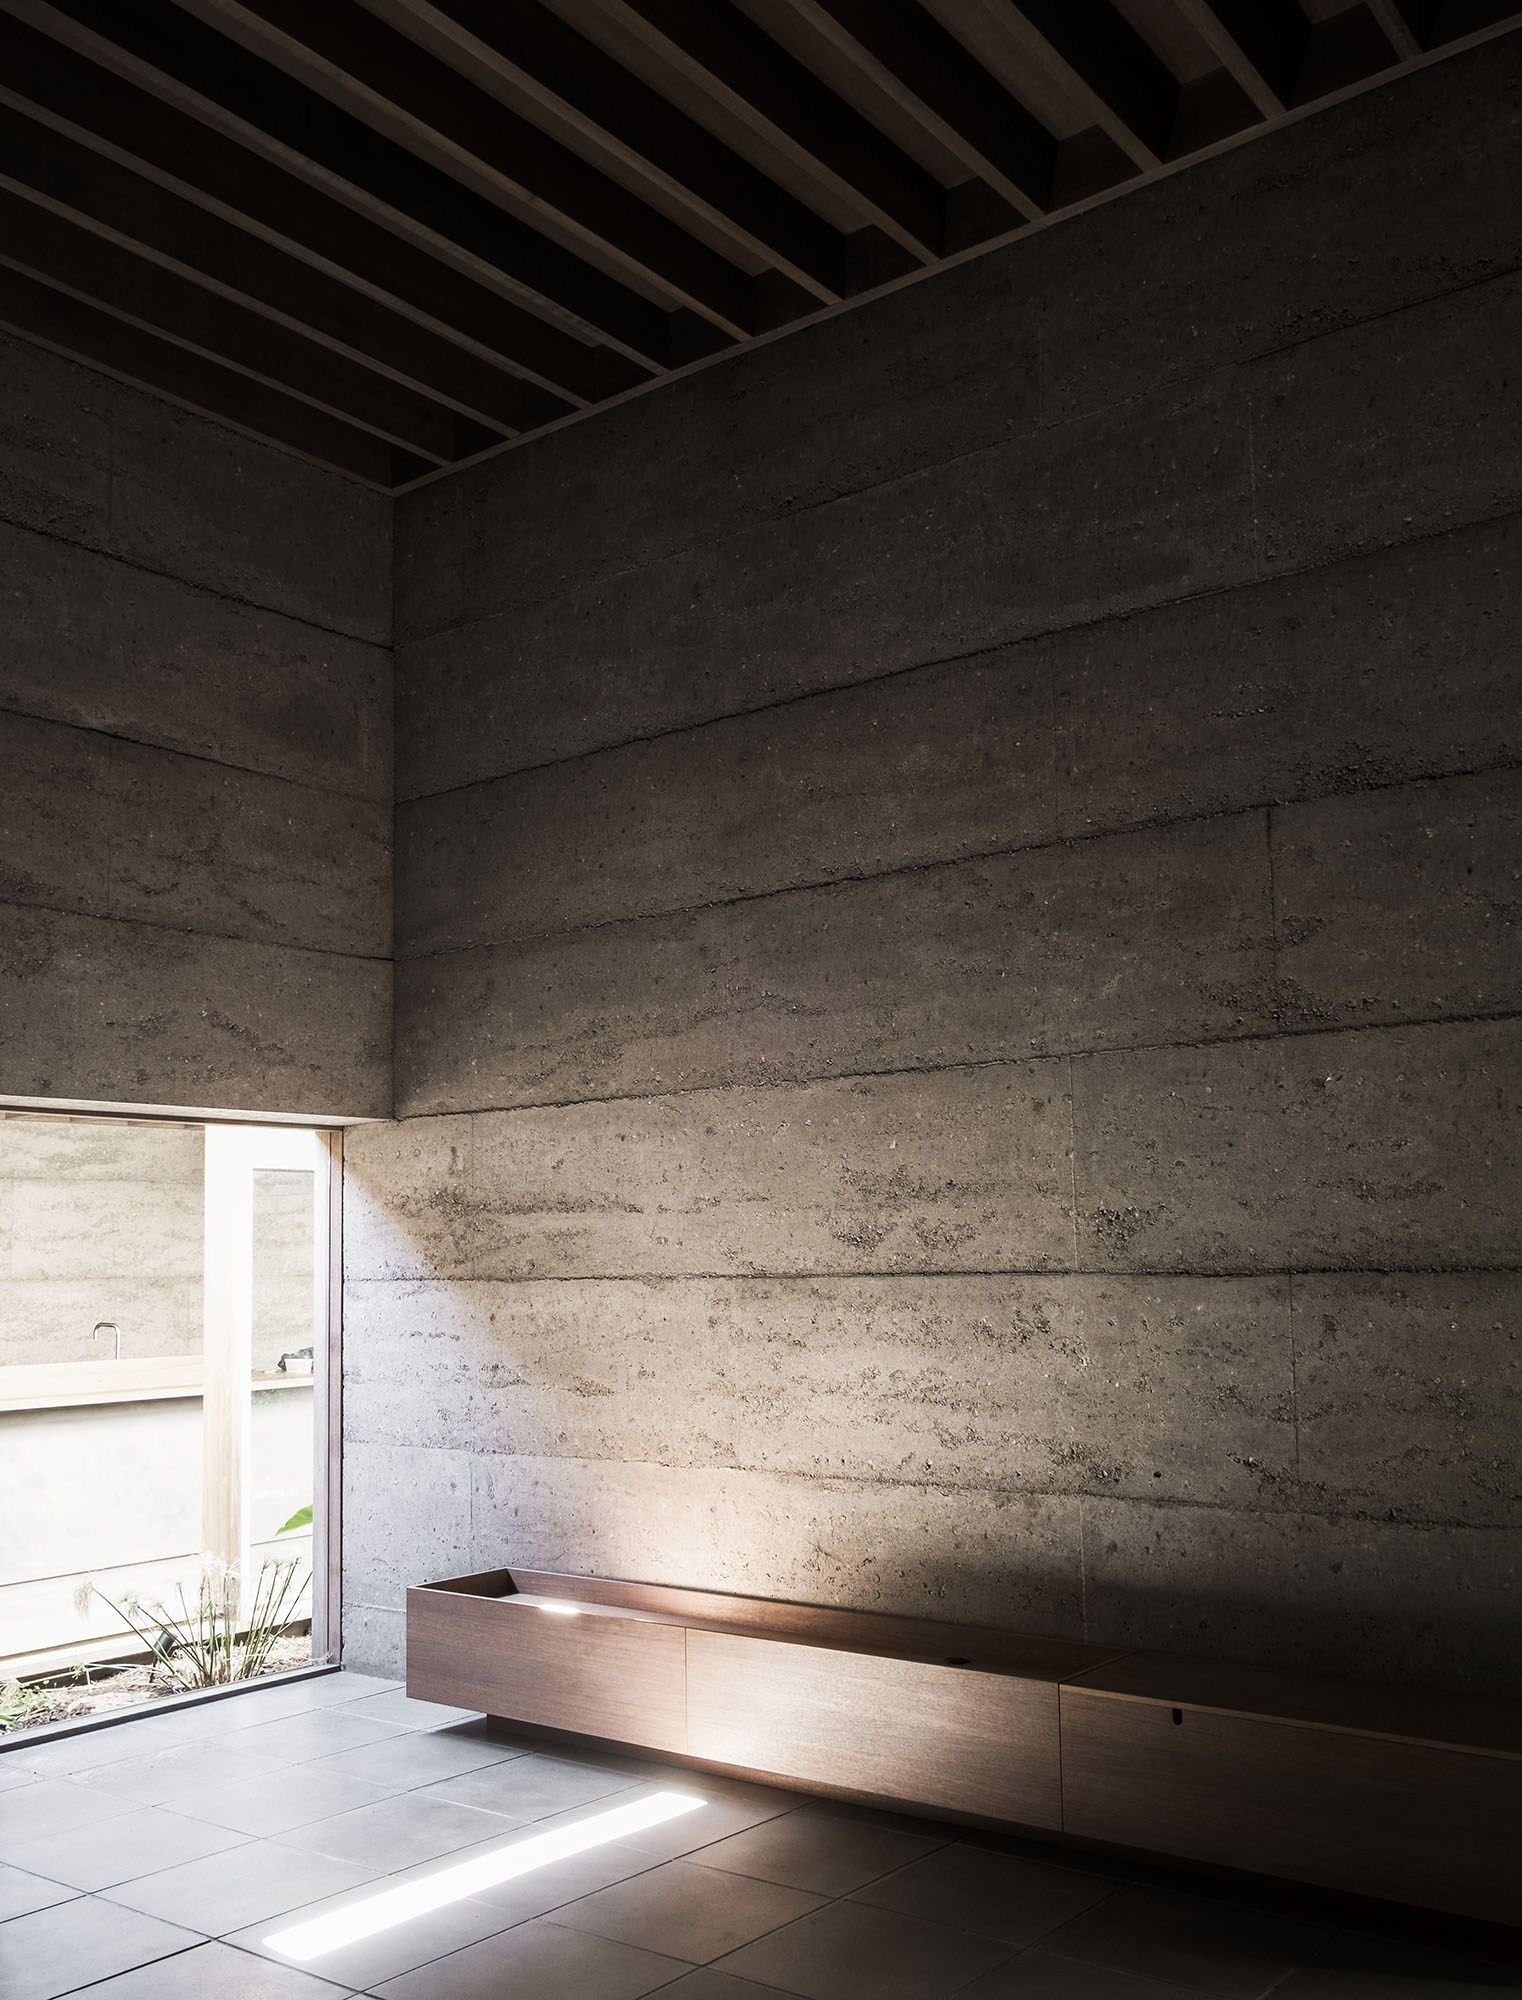 Rammed Concrete Walls Are Unadorned With Further Embellishment Concrete Wall Architecture Australian Architecture